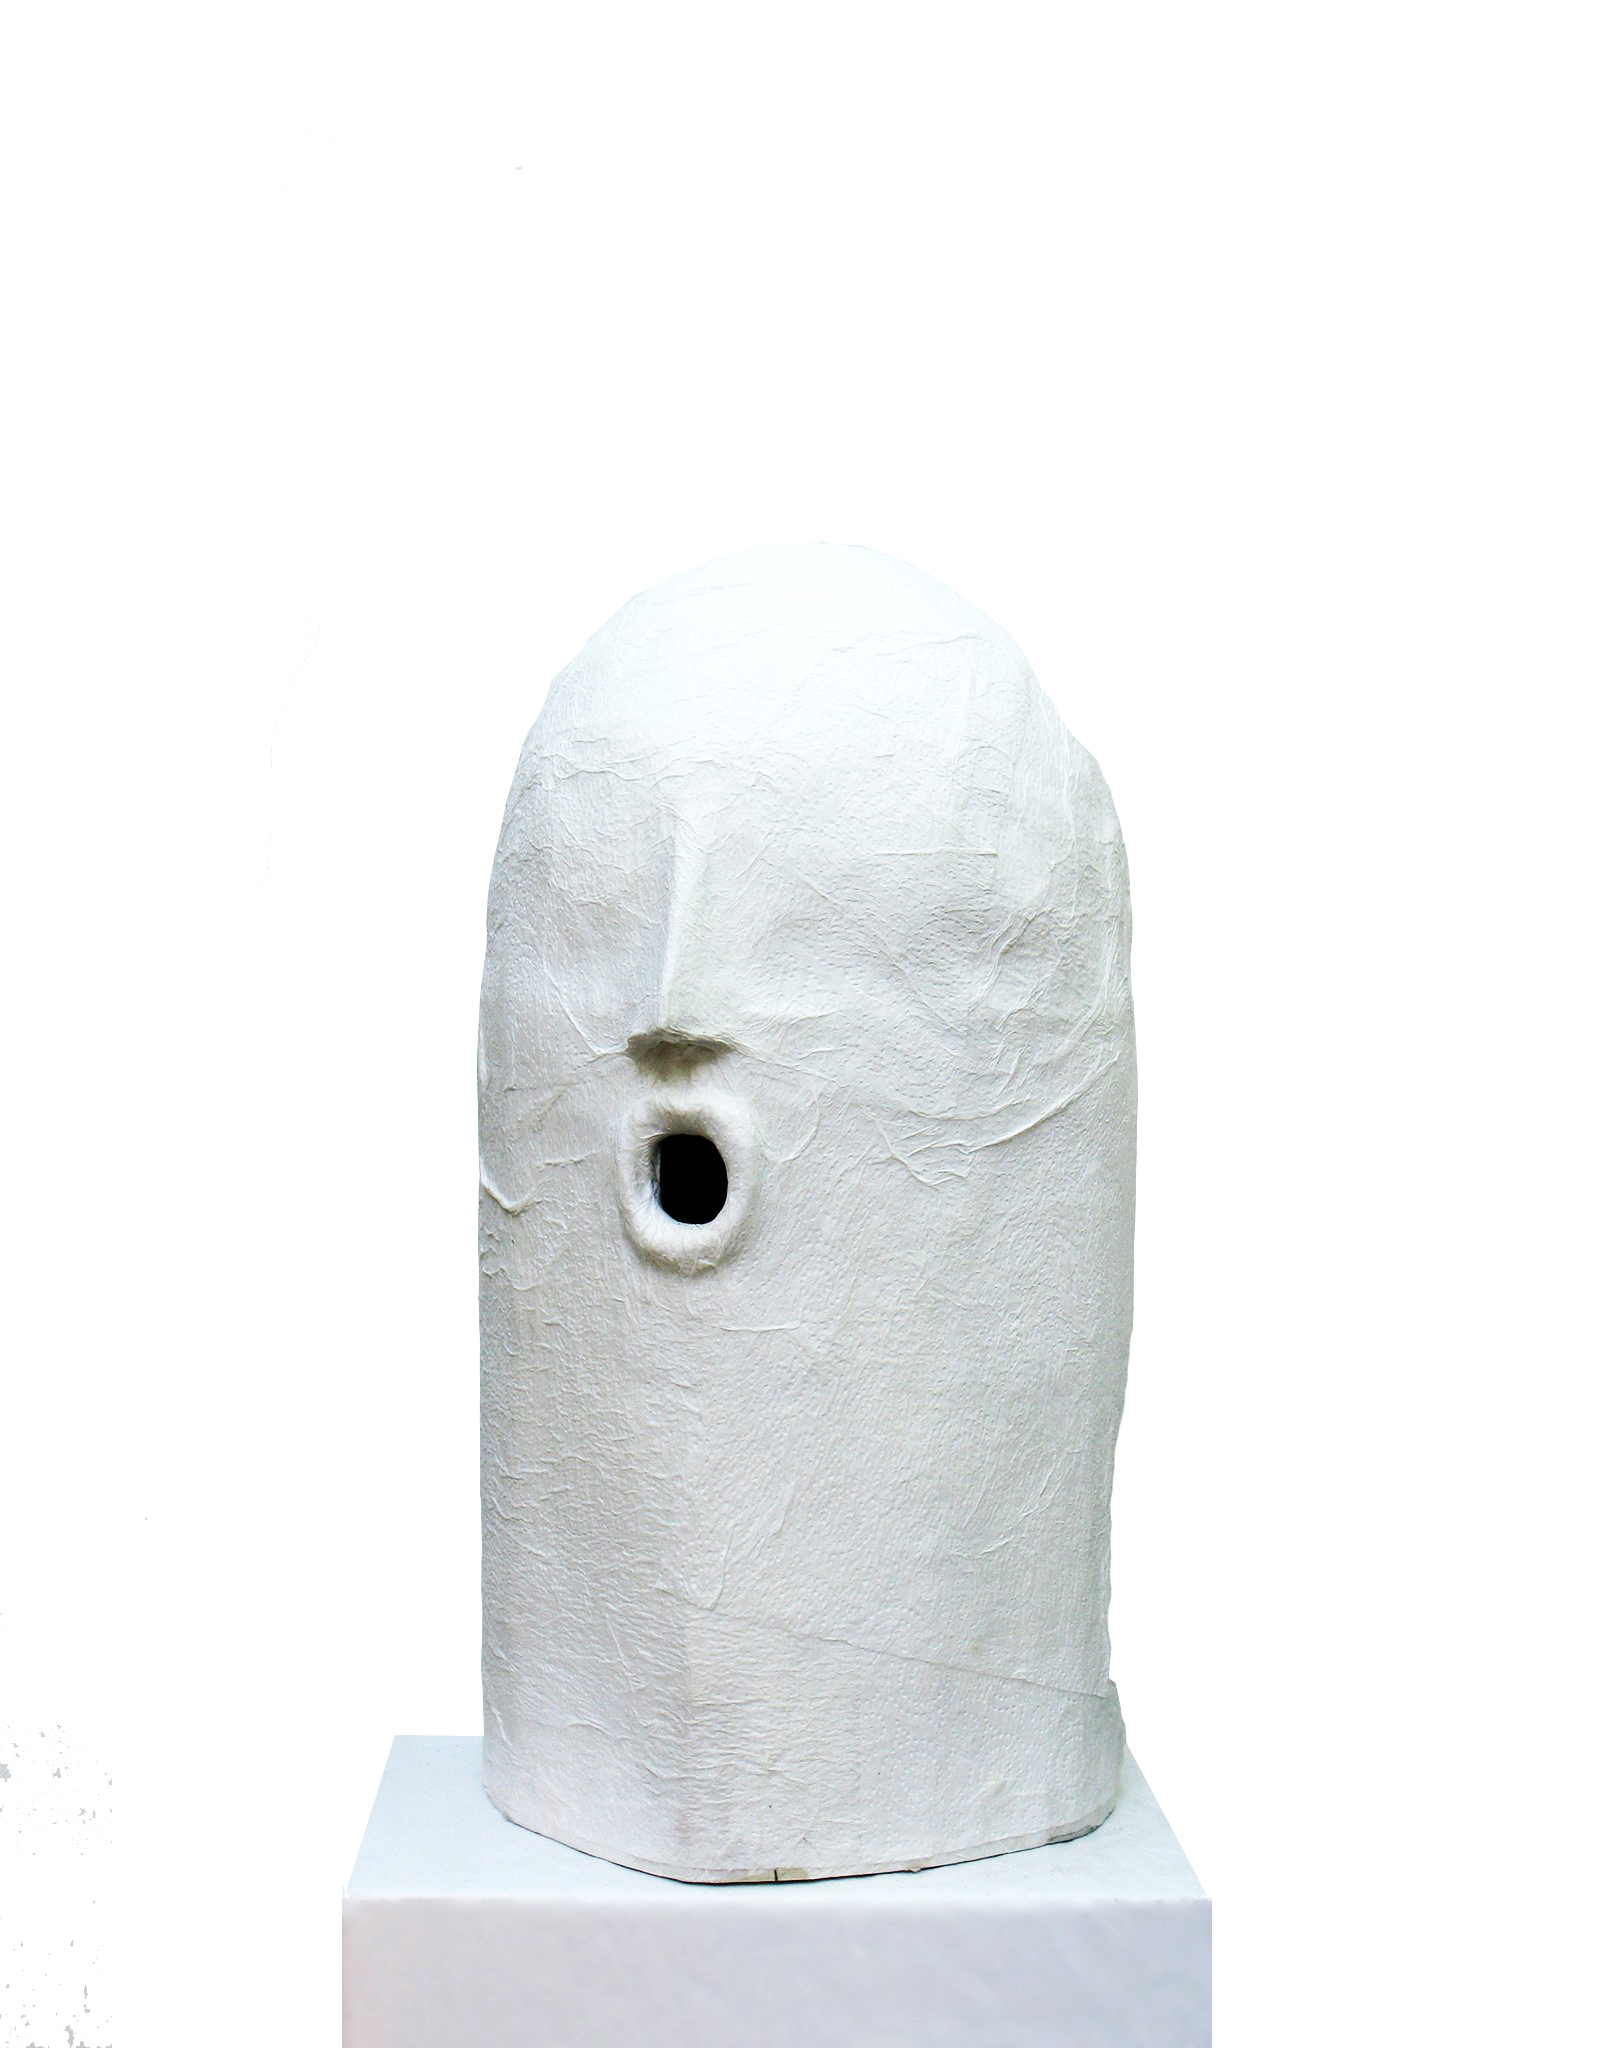 David Harrison One in the Eye (Mobile Glory Hole), 2012 Paper towels, cardboard and mixed media 44 x 22 x 24 cm 17 3/8 x 8 5/8 x 9 1/2 in